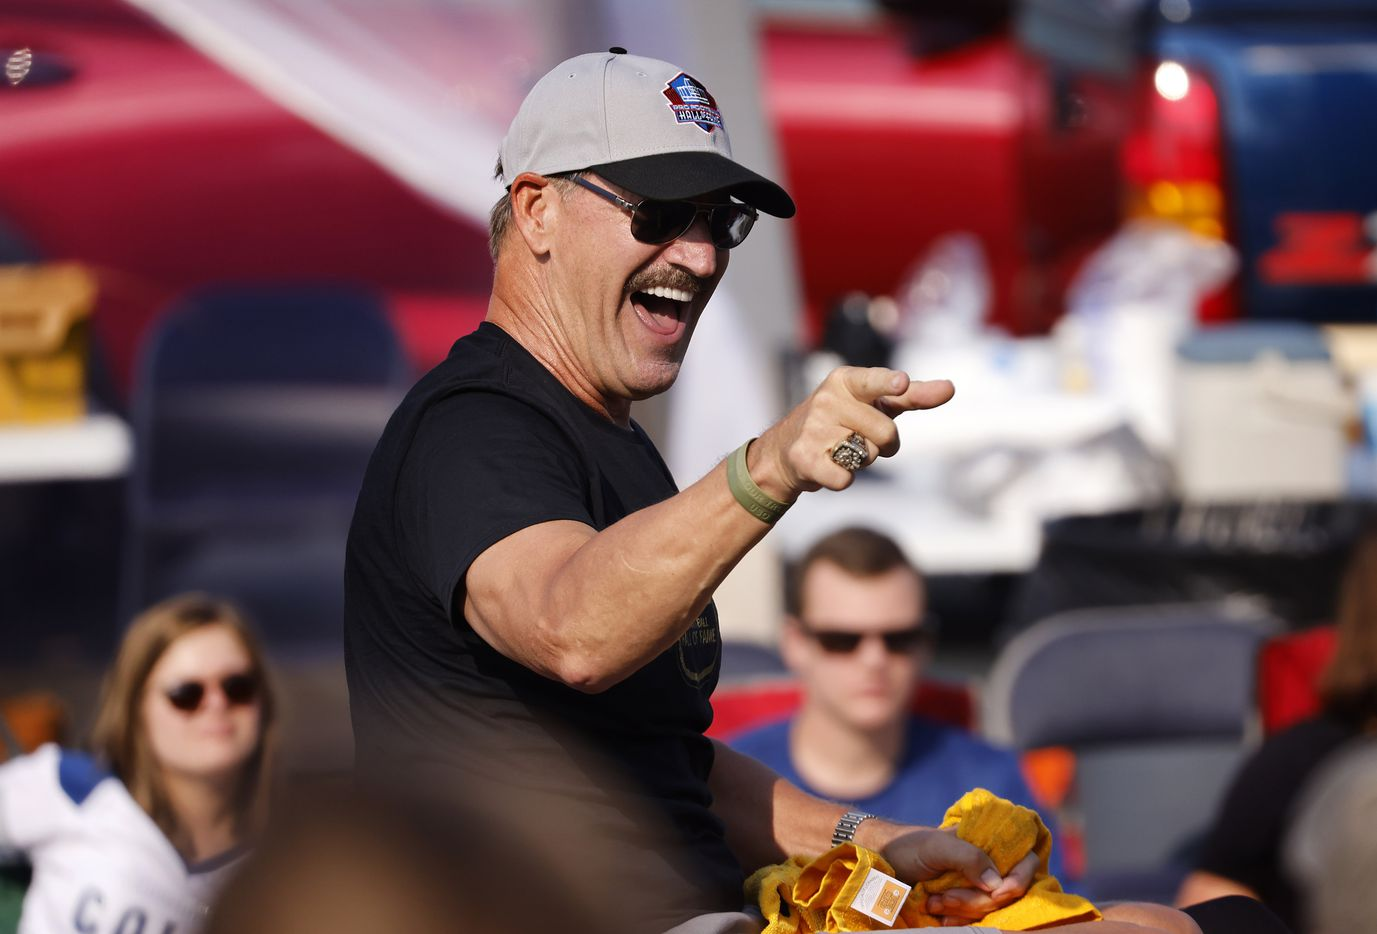 Pittsburgh Steelers Pro Football Hall of Fame inductee Bill Cowher points to his fans as he rides down Cleveland Ave during the Canton Repository Grand Parade in downtown Canton, Ohio, Saturday, August 7, 2021. The parade honored newly elected and former members of the Hall, including newcomers and former Dallas Cowboys players Cliff Harris, Drew Pearson and head coach Jimmy Johnson. (Tom Fox/The Dallas Morning News)